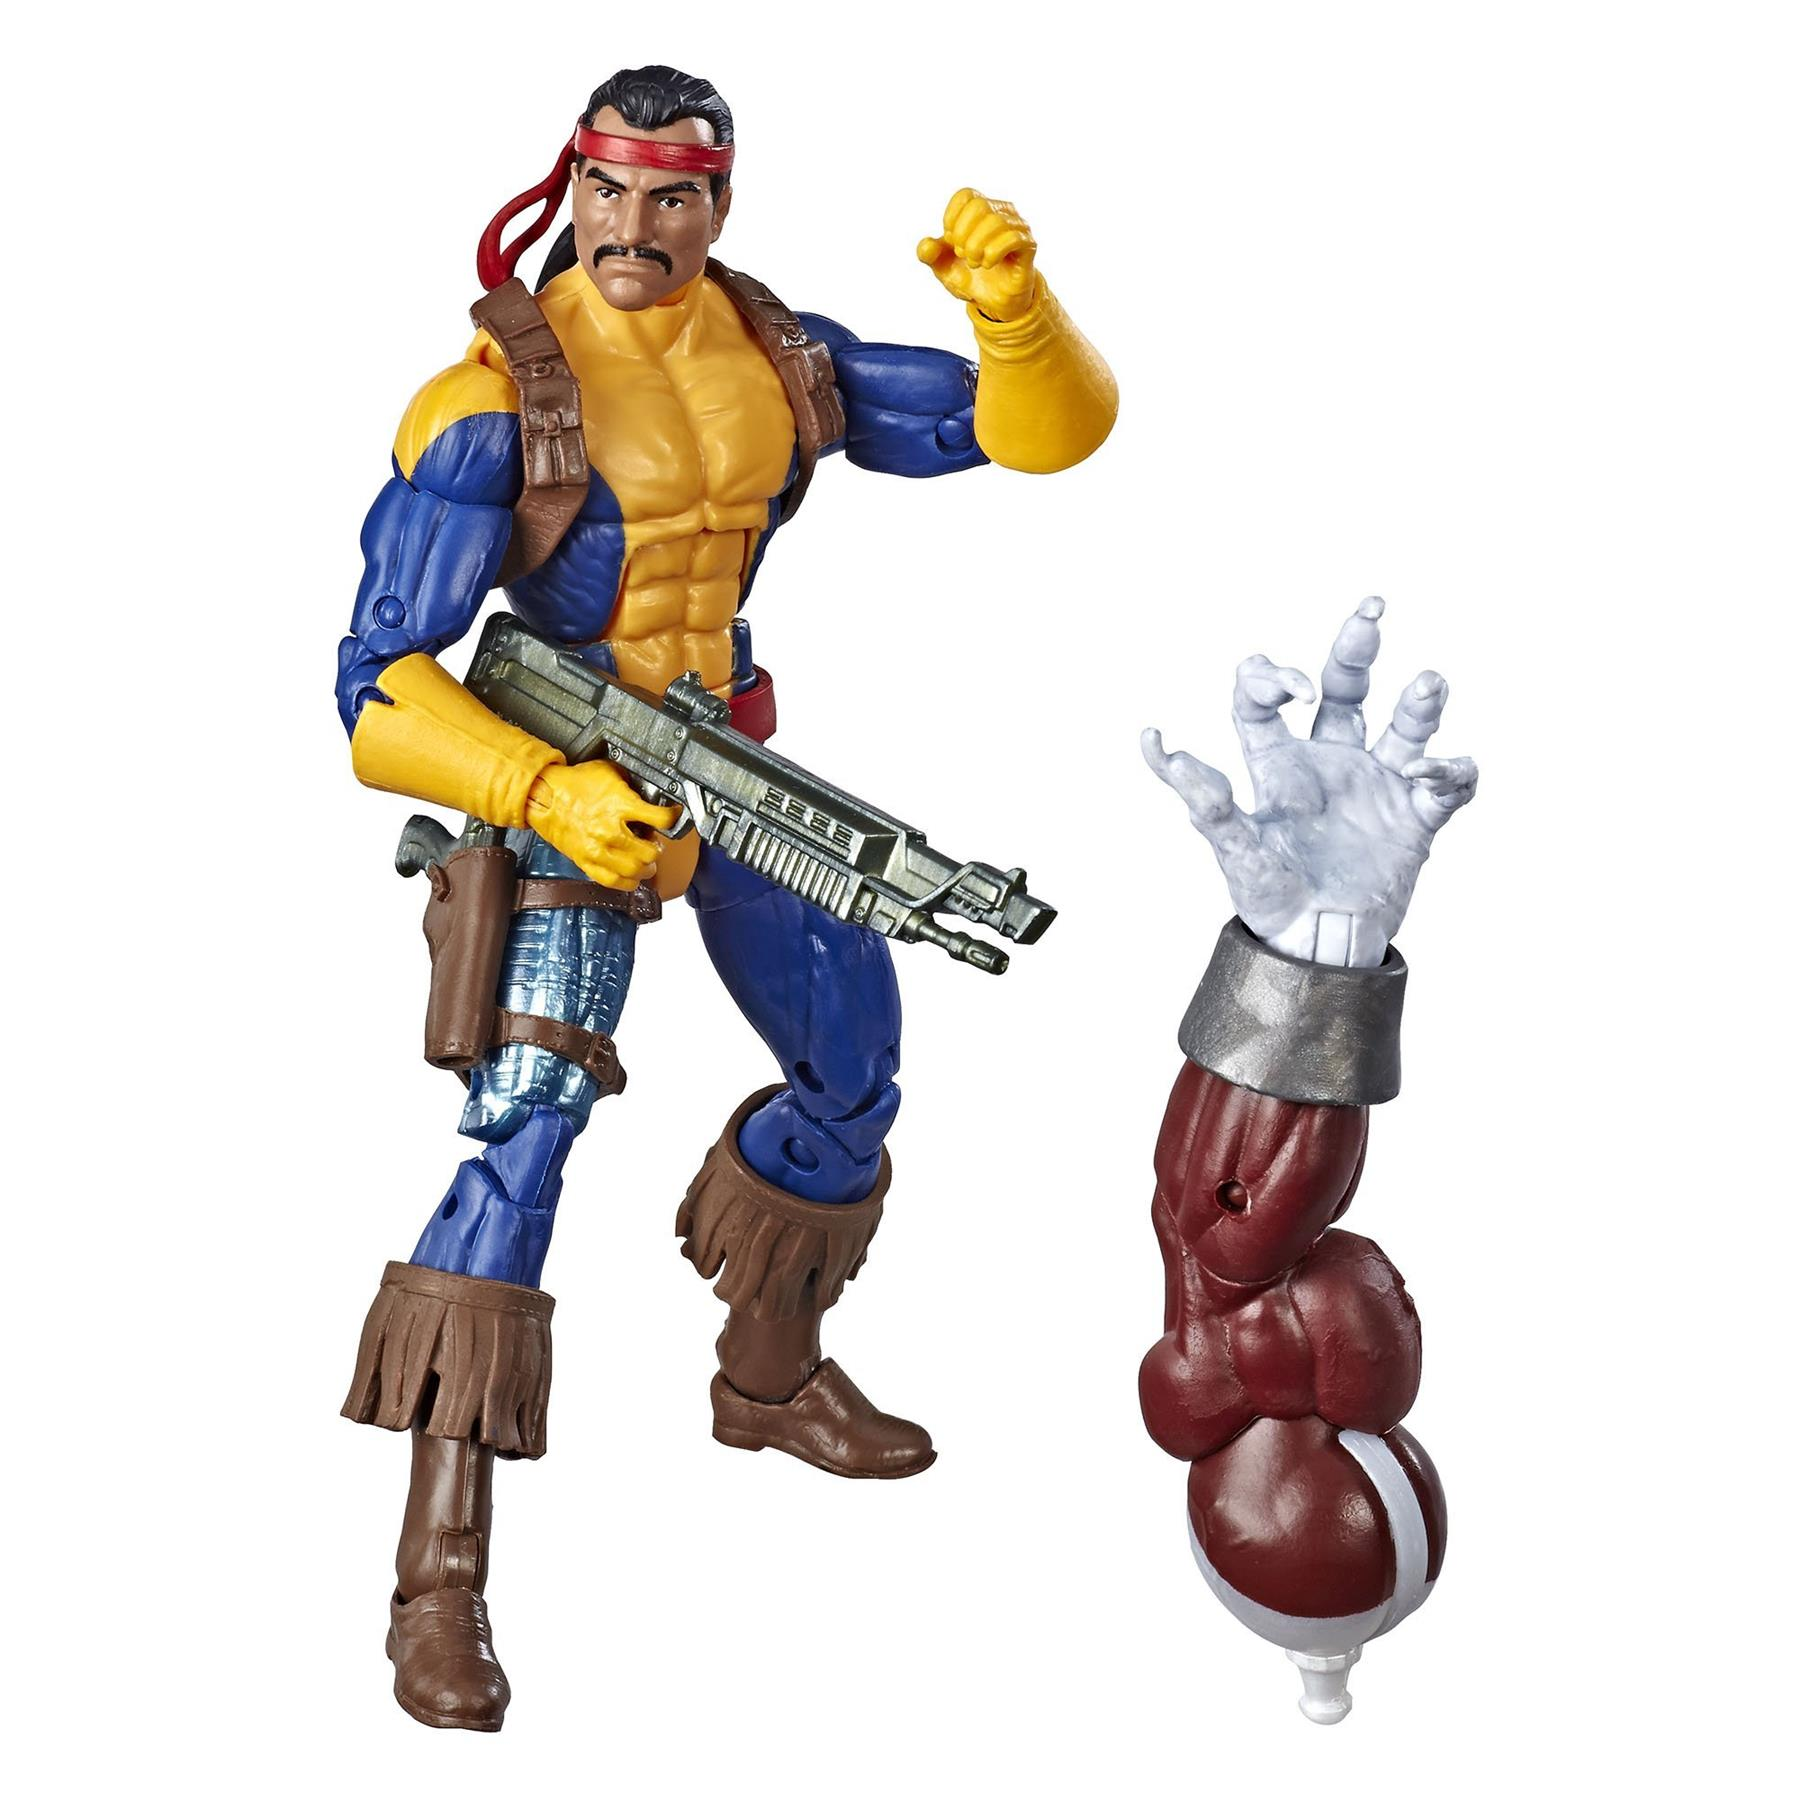 environ 15.24 cm Marvel legends X-Men Colossus 6 in ACTION FIGURE NEW